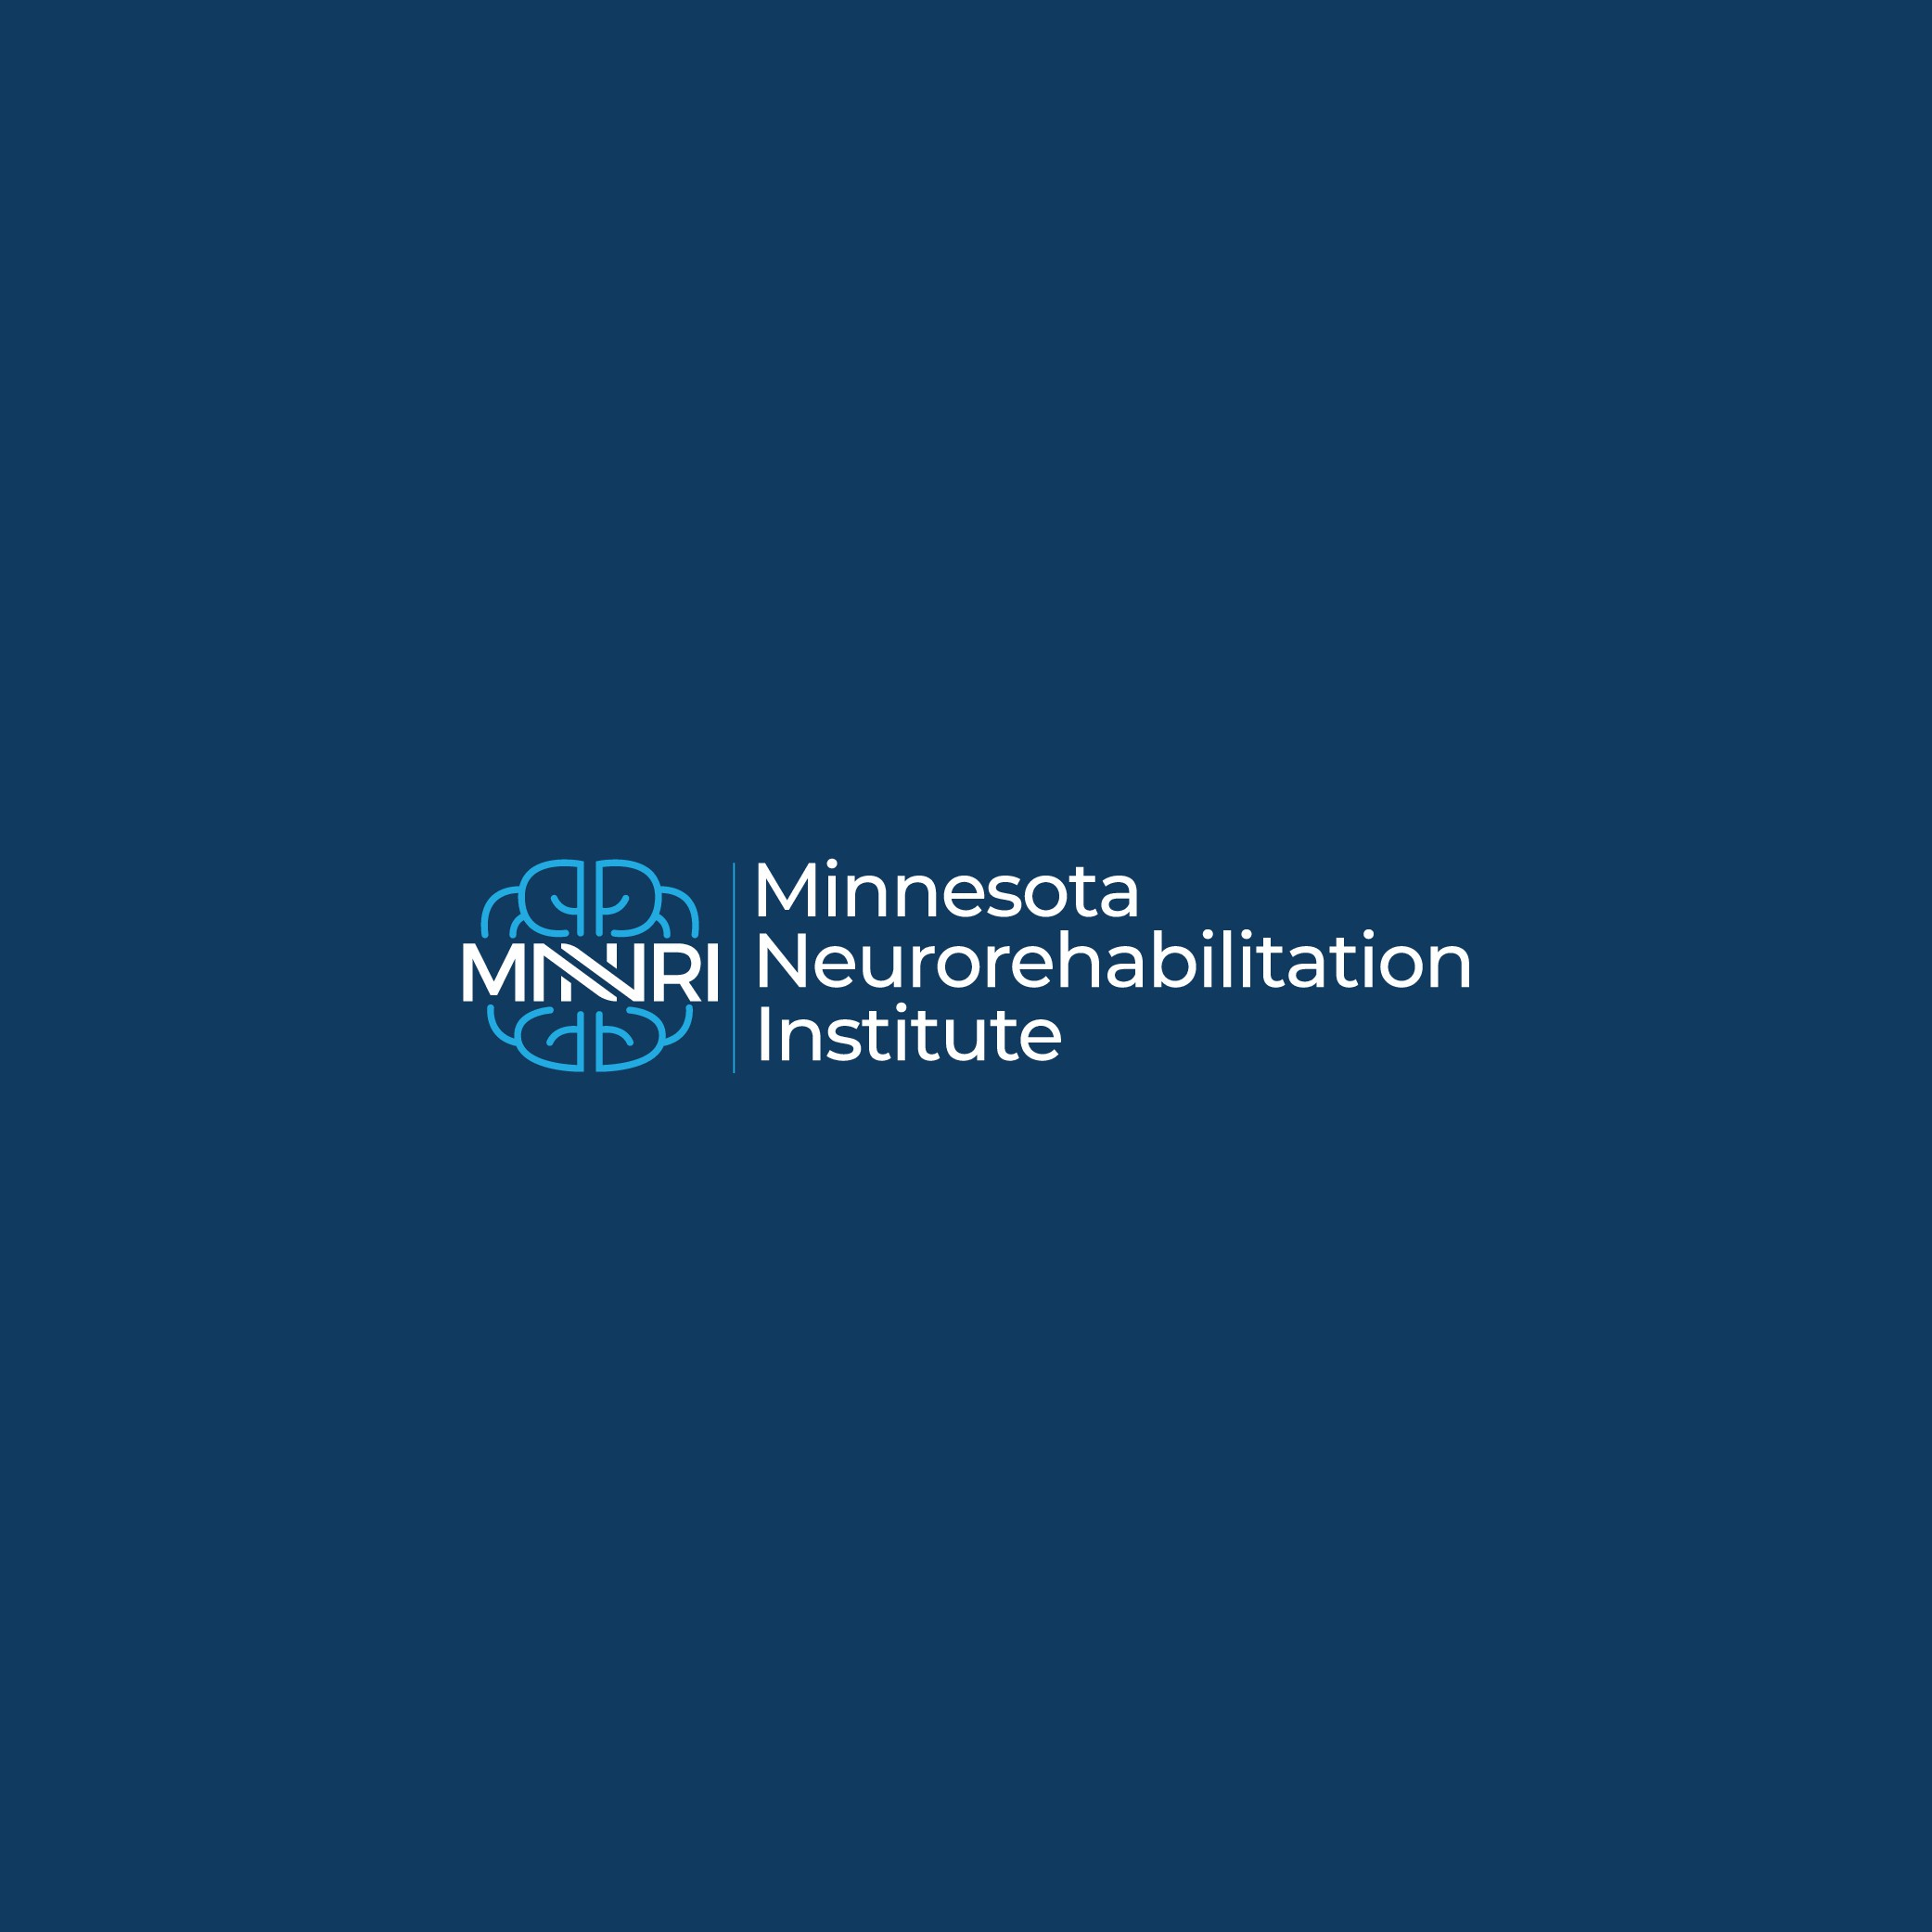 Need logo for forward thinking TBI/spinal cord injury medical practice